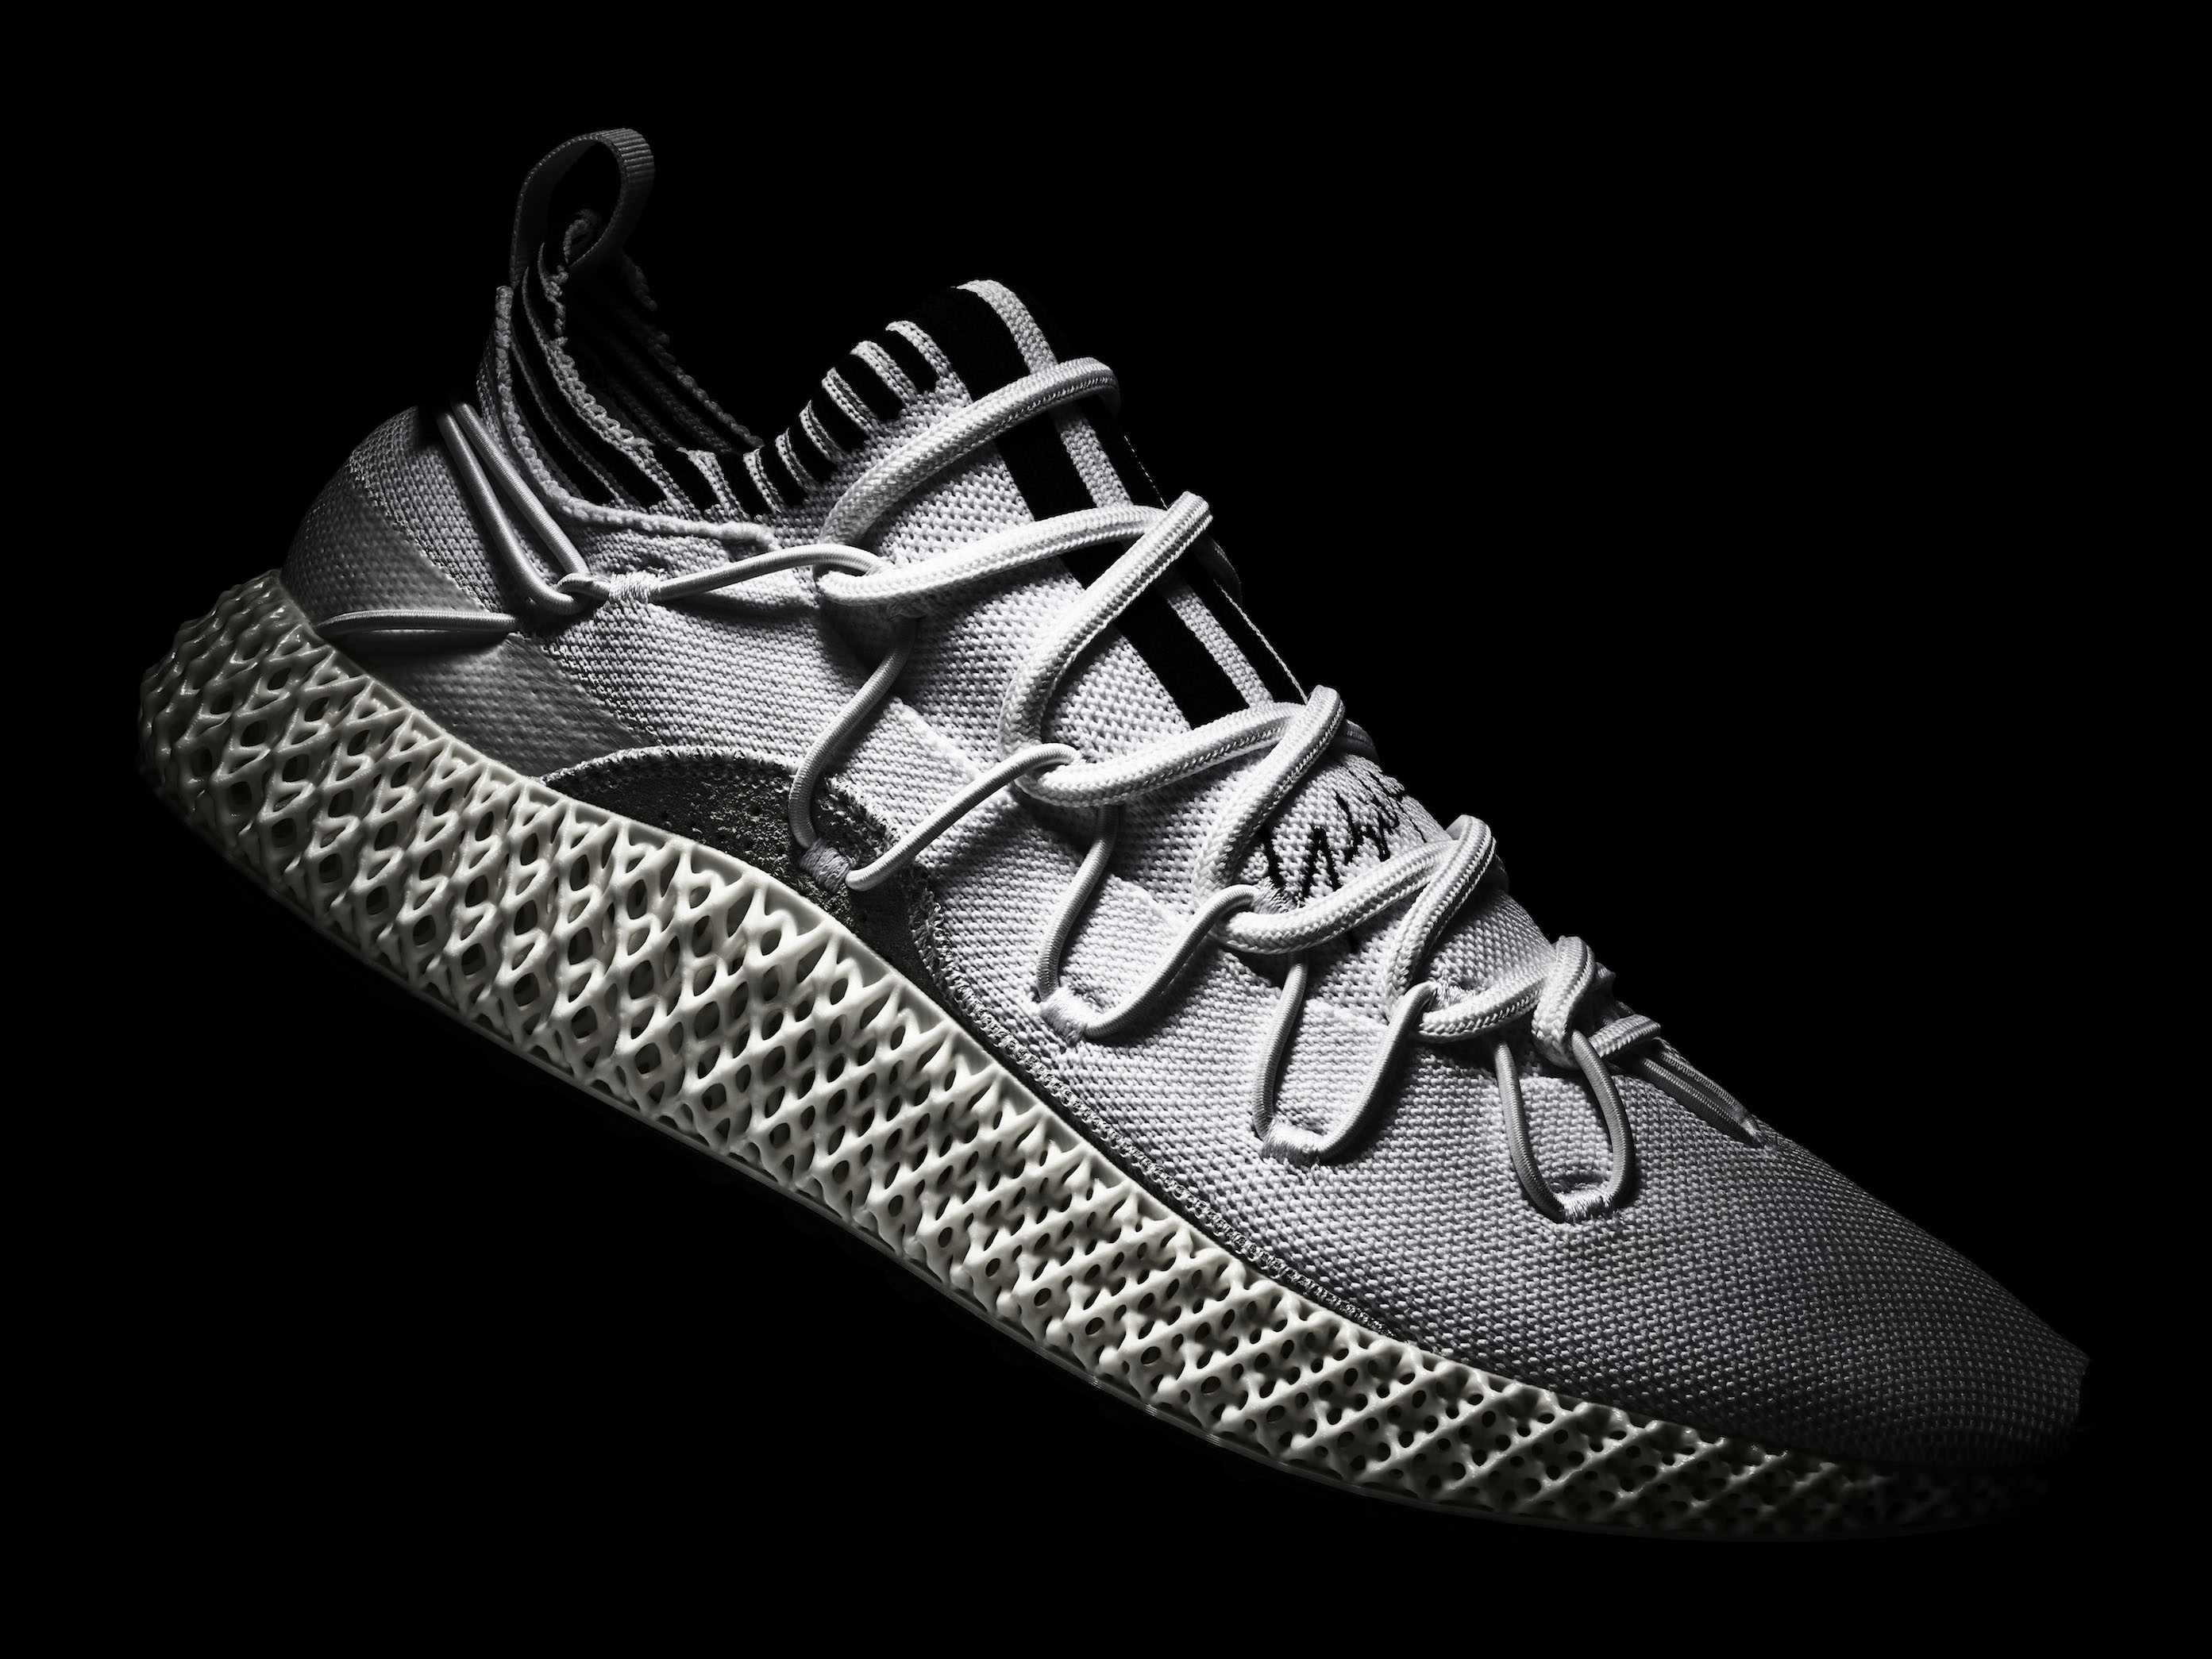 ADIDAS 4Dミッドソールが特徴<br>Y-3「RUNNER 4D II」